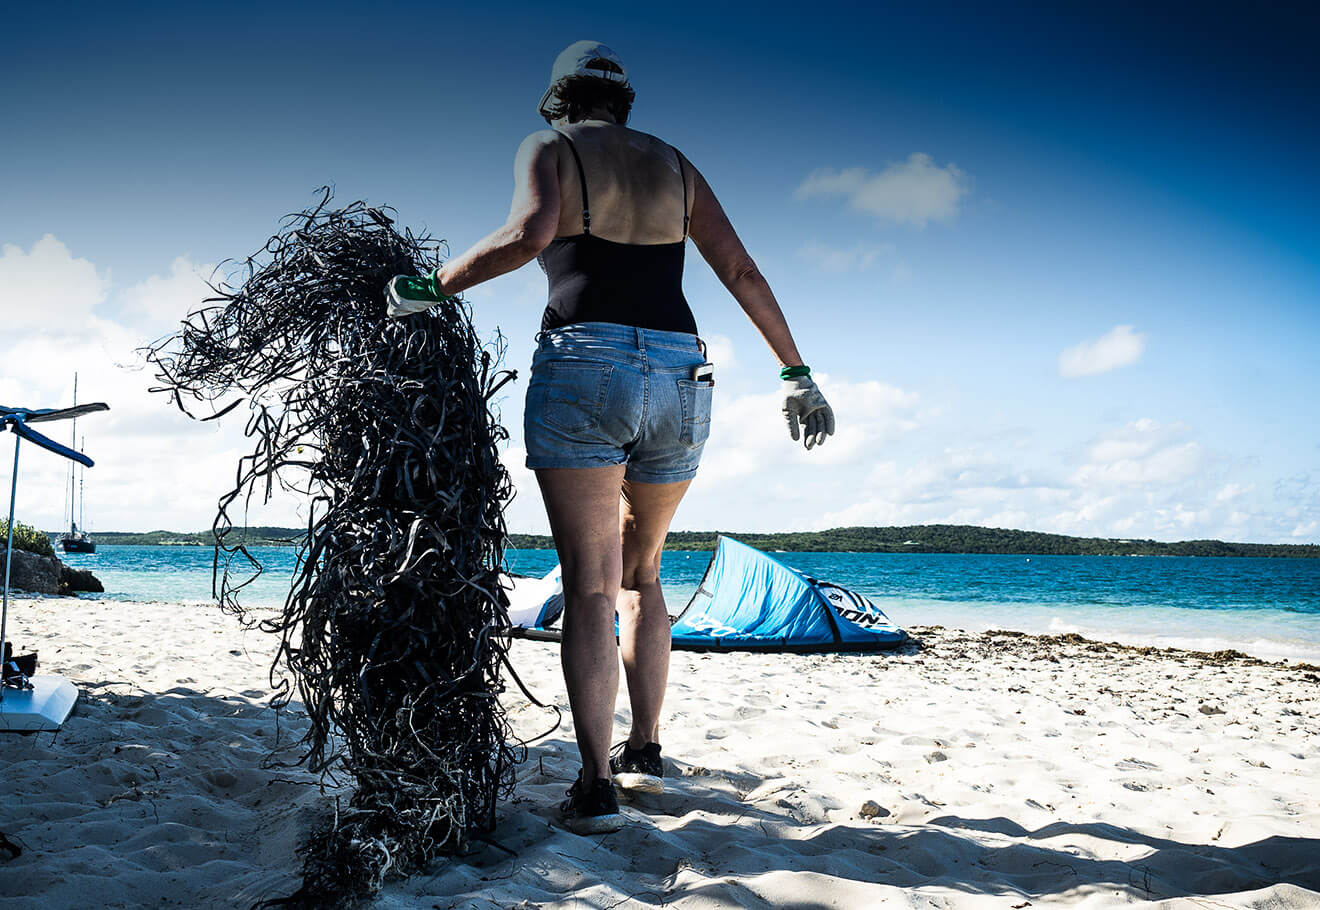 Cleaning up fishing nets from a beach